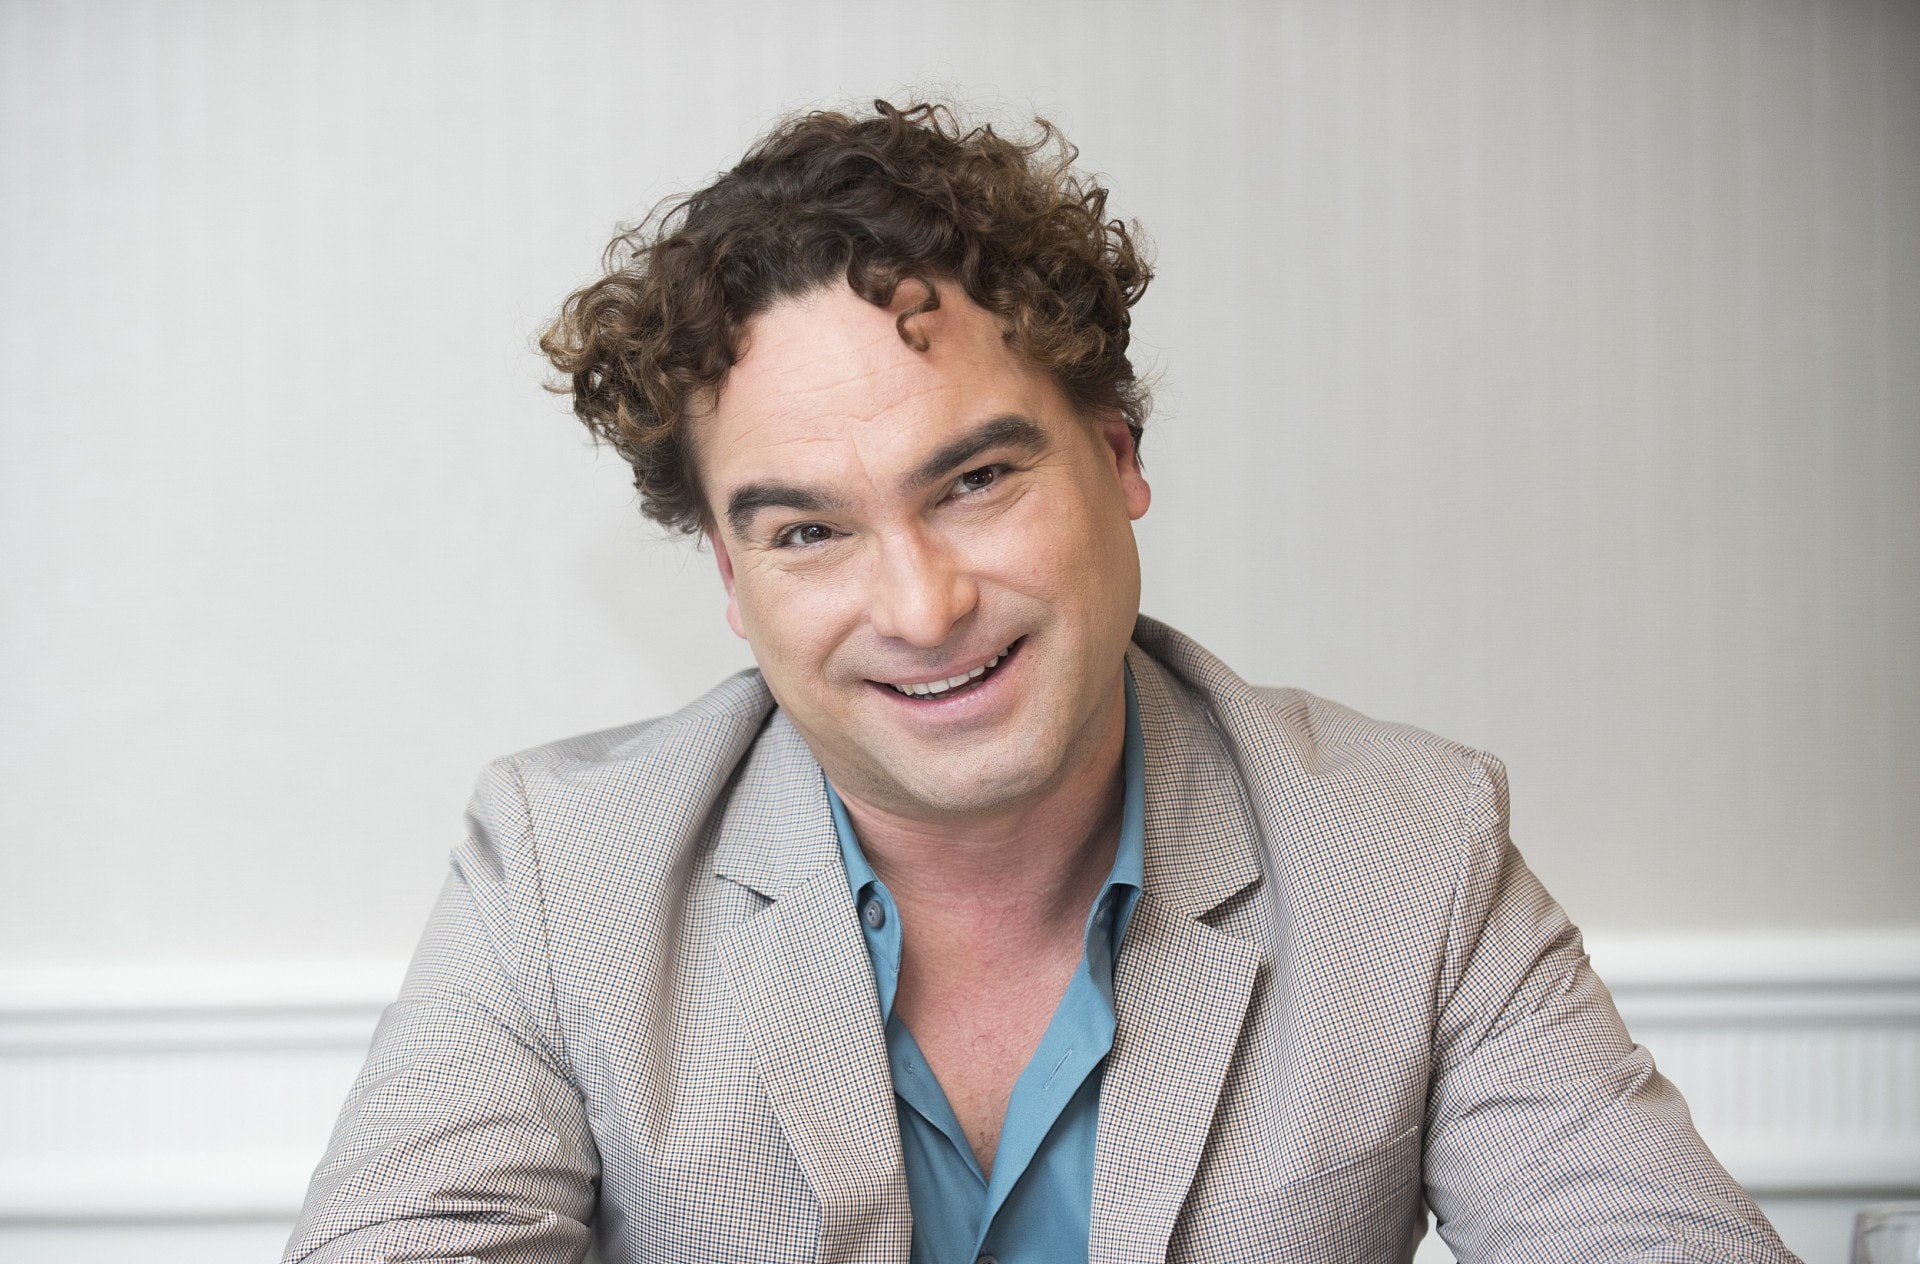 第二位:Johnny Galecki《Big Bang Theory》